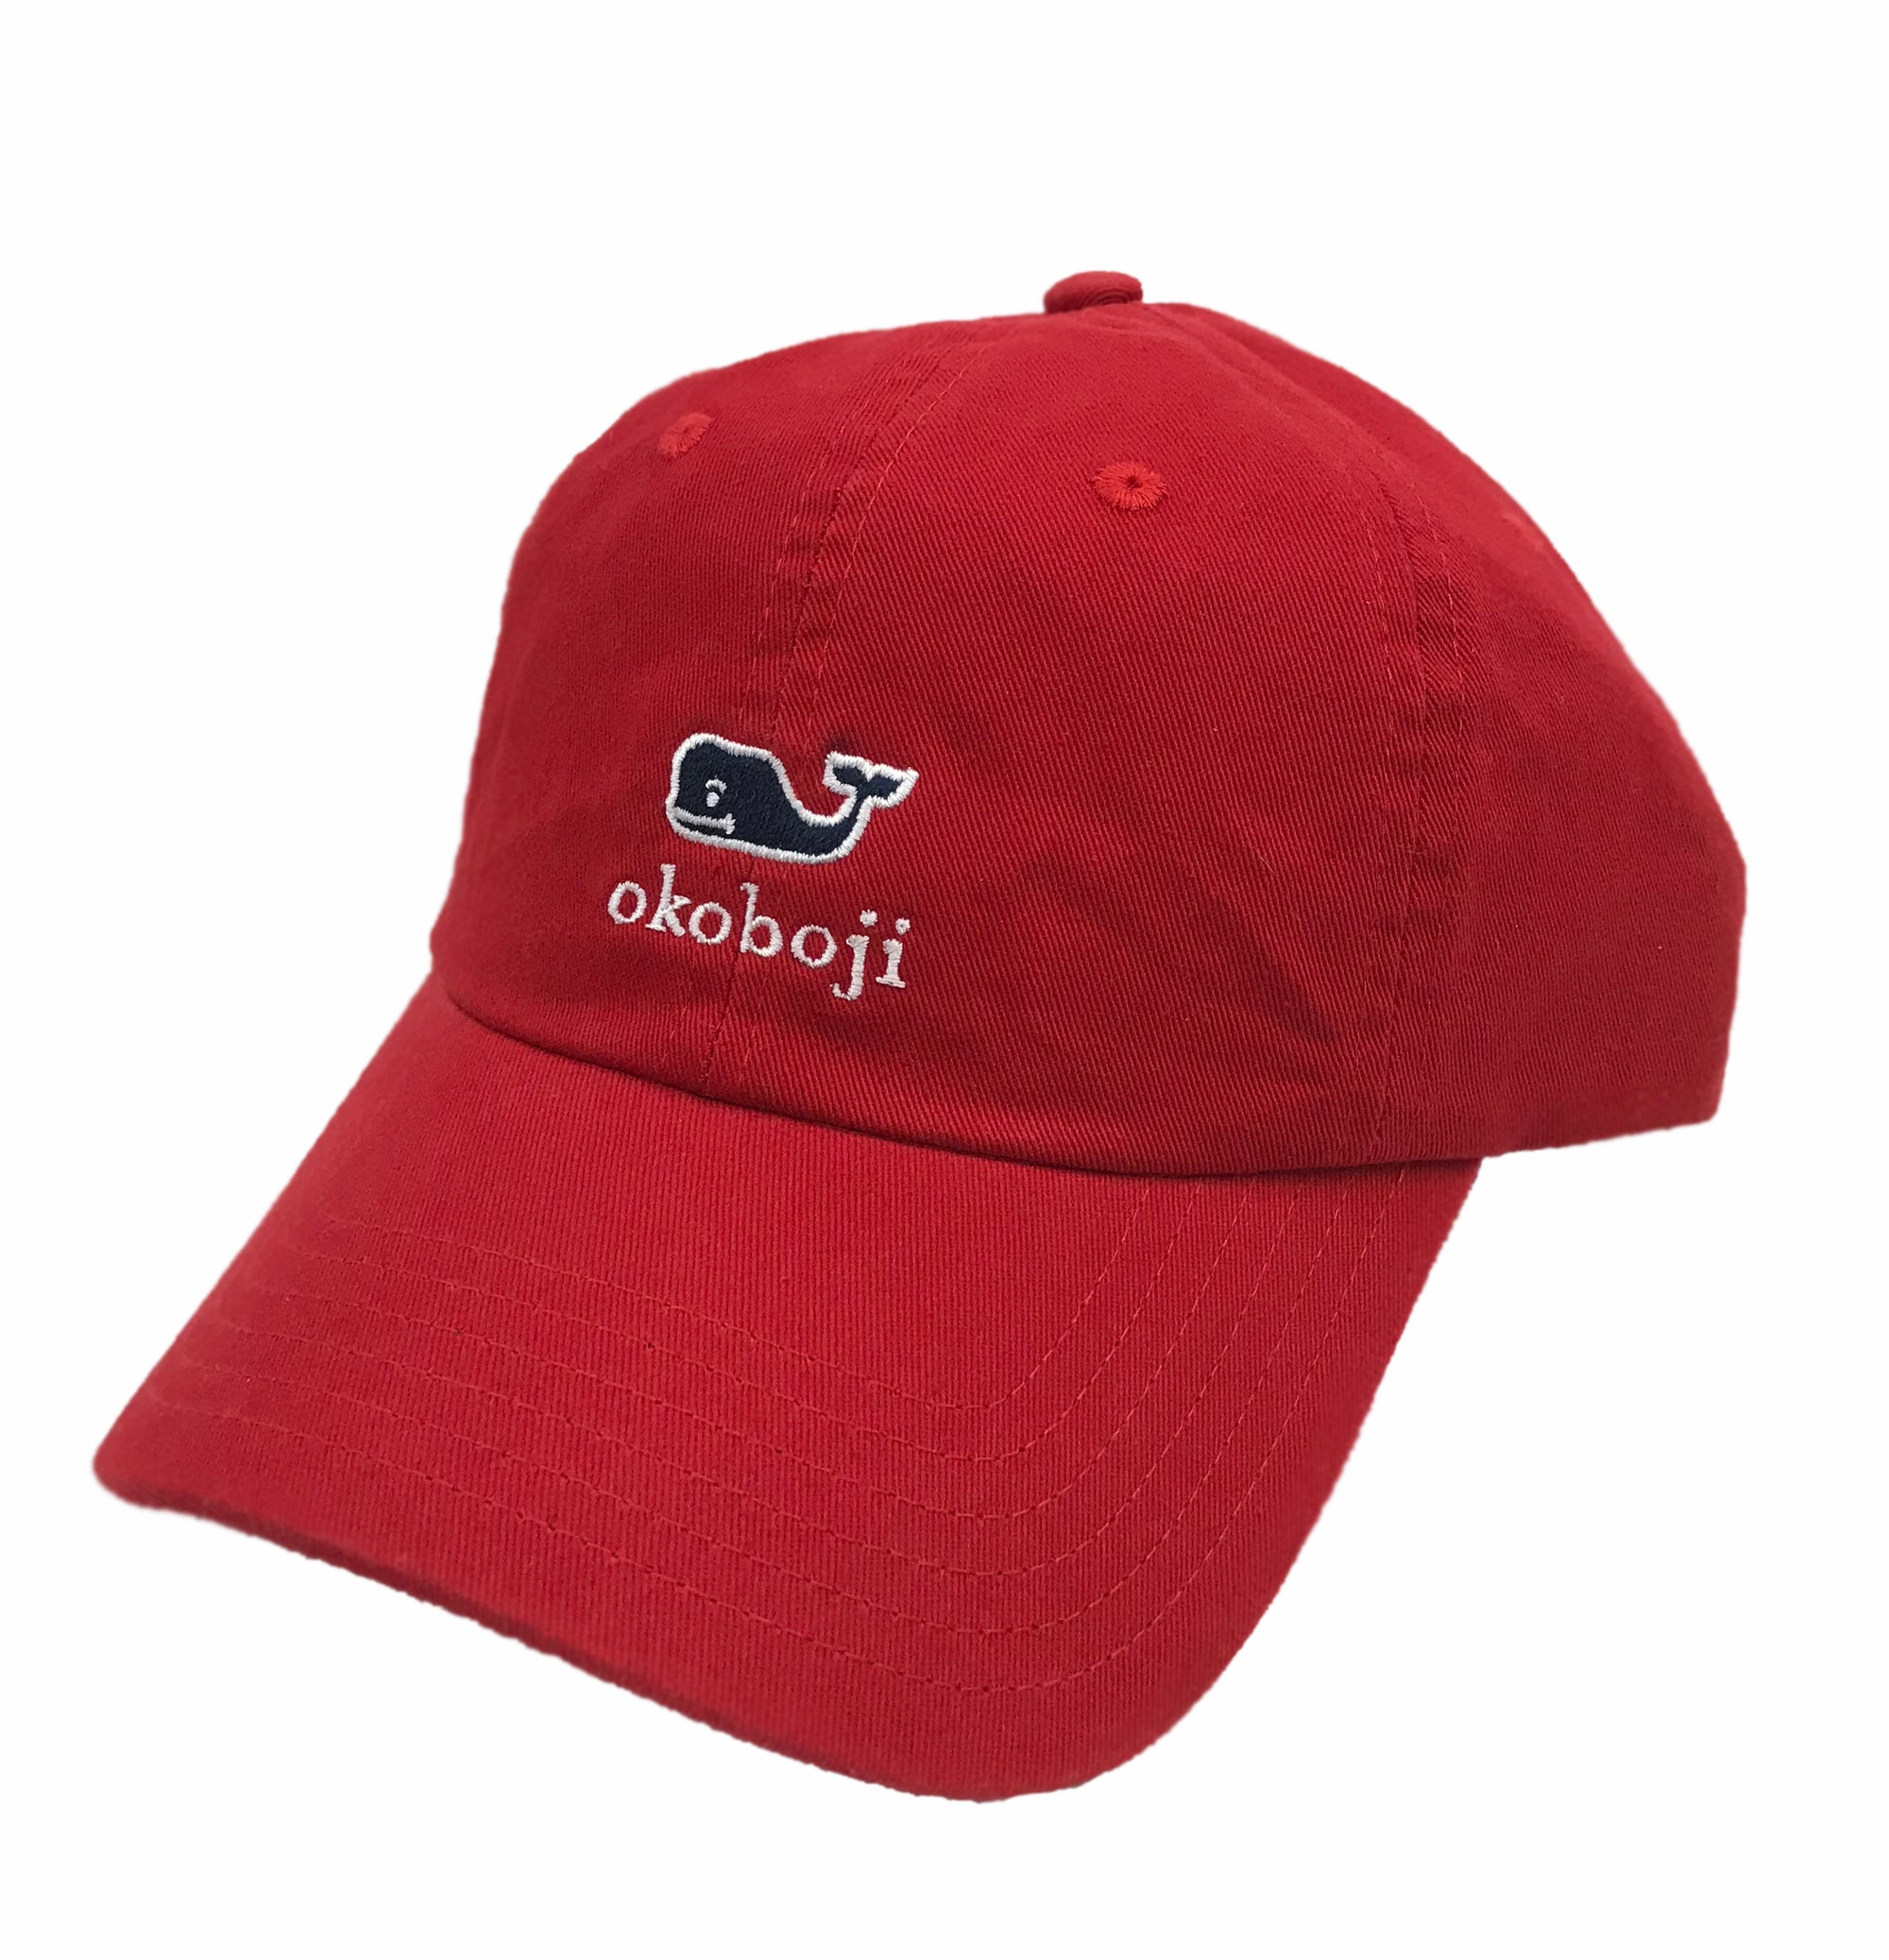 Vineyard Vines ® Red Okoboji Cap ‎